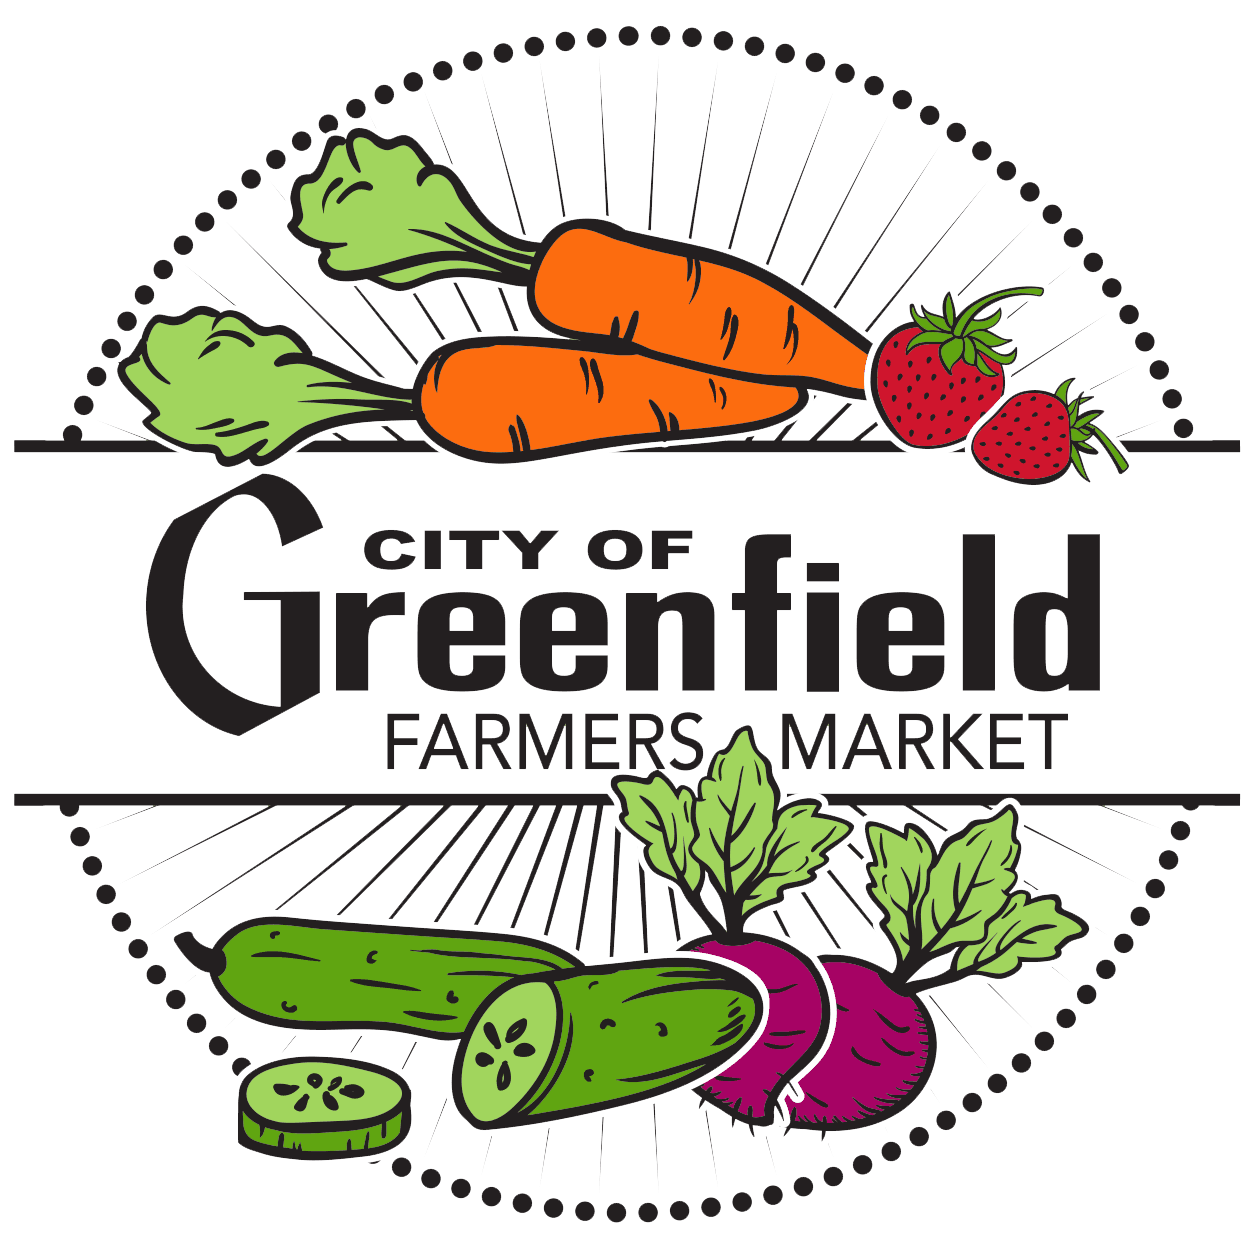 City Greenfield Farmers Market